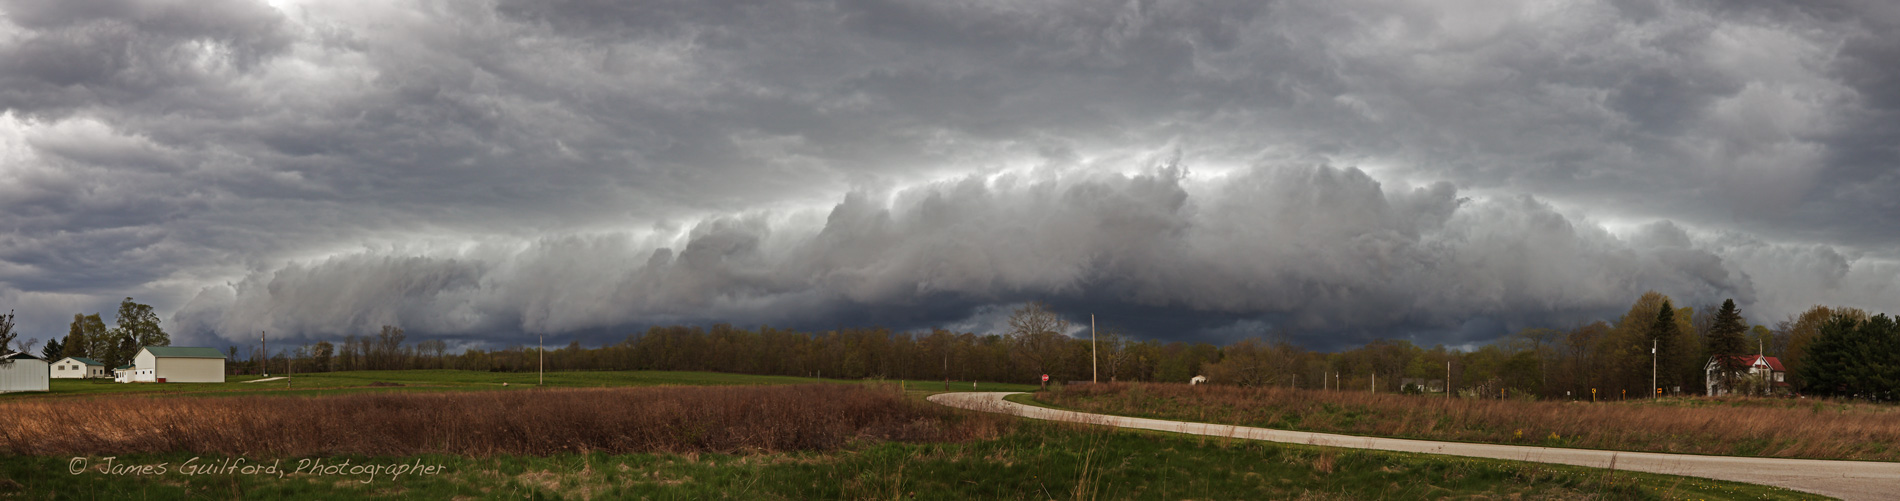 May 10 shelf cloud. Photo by James Guilford